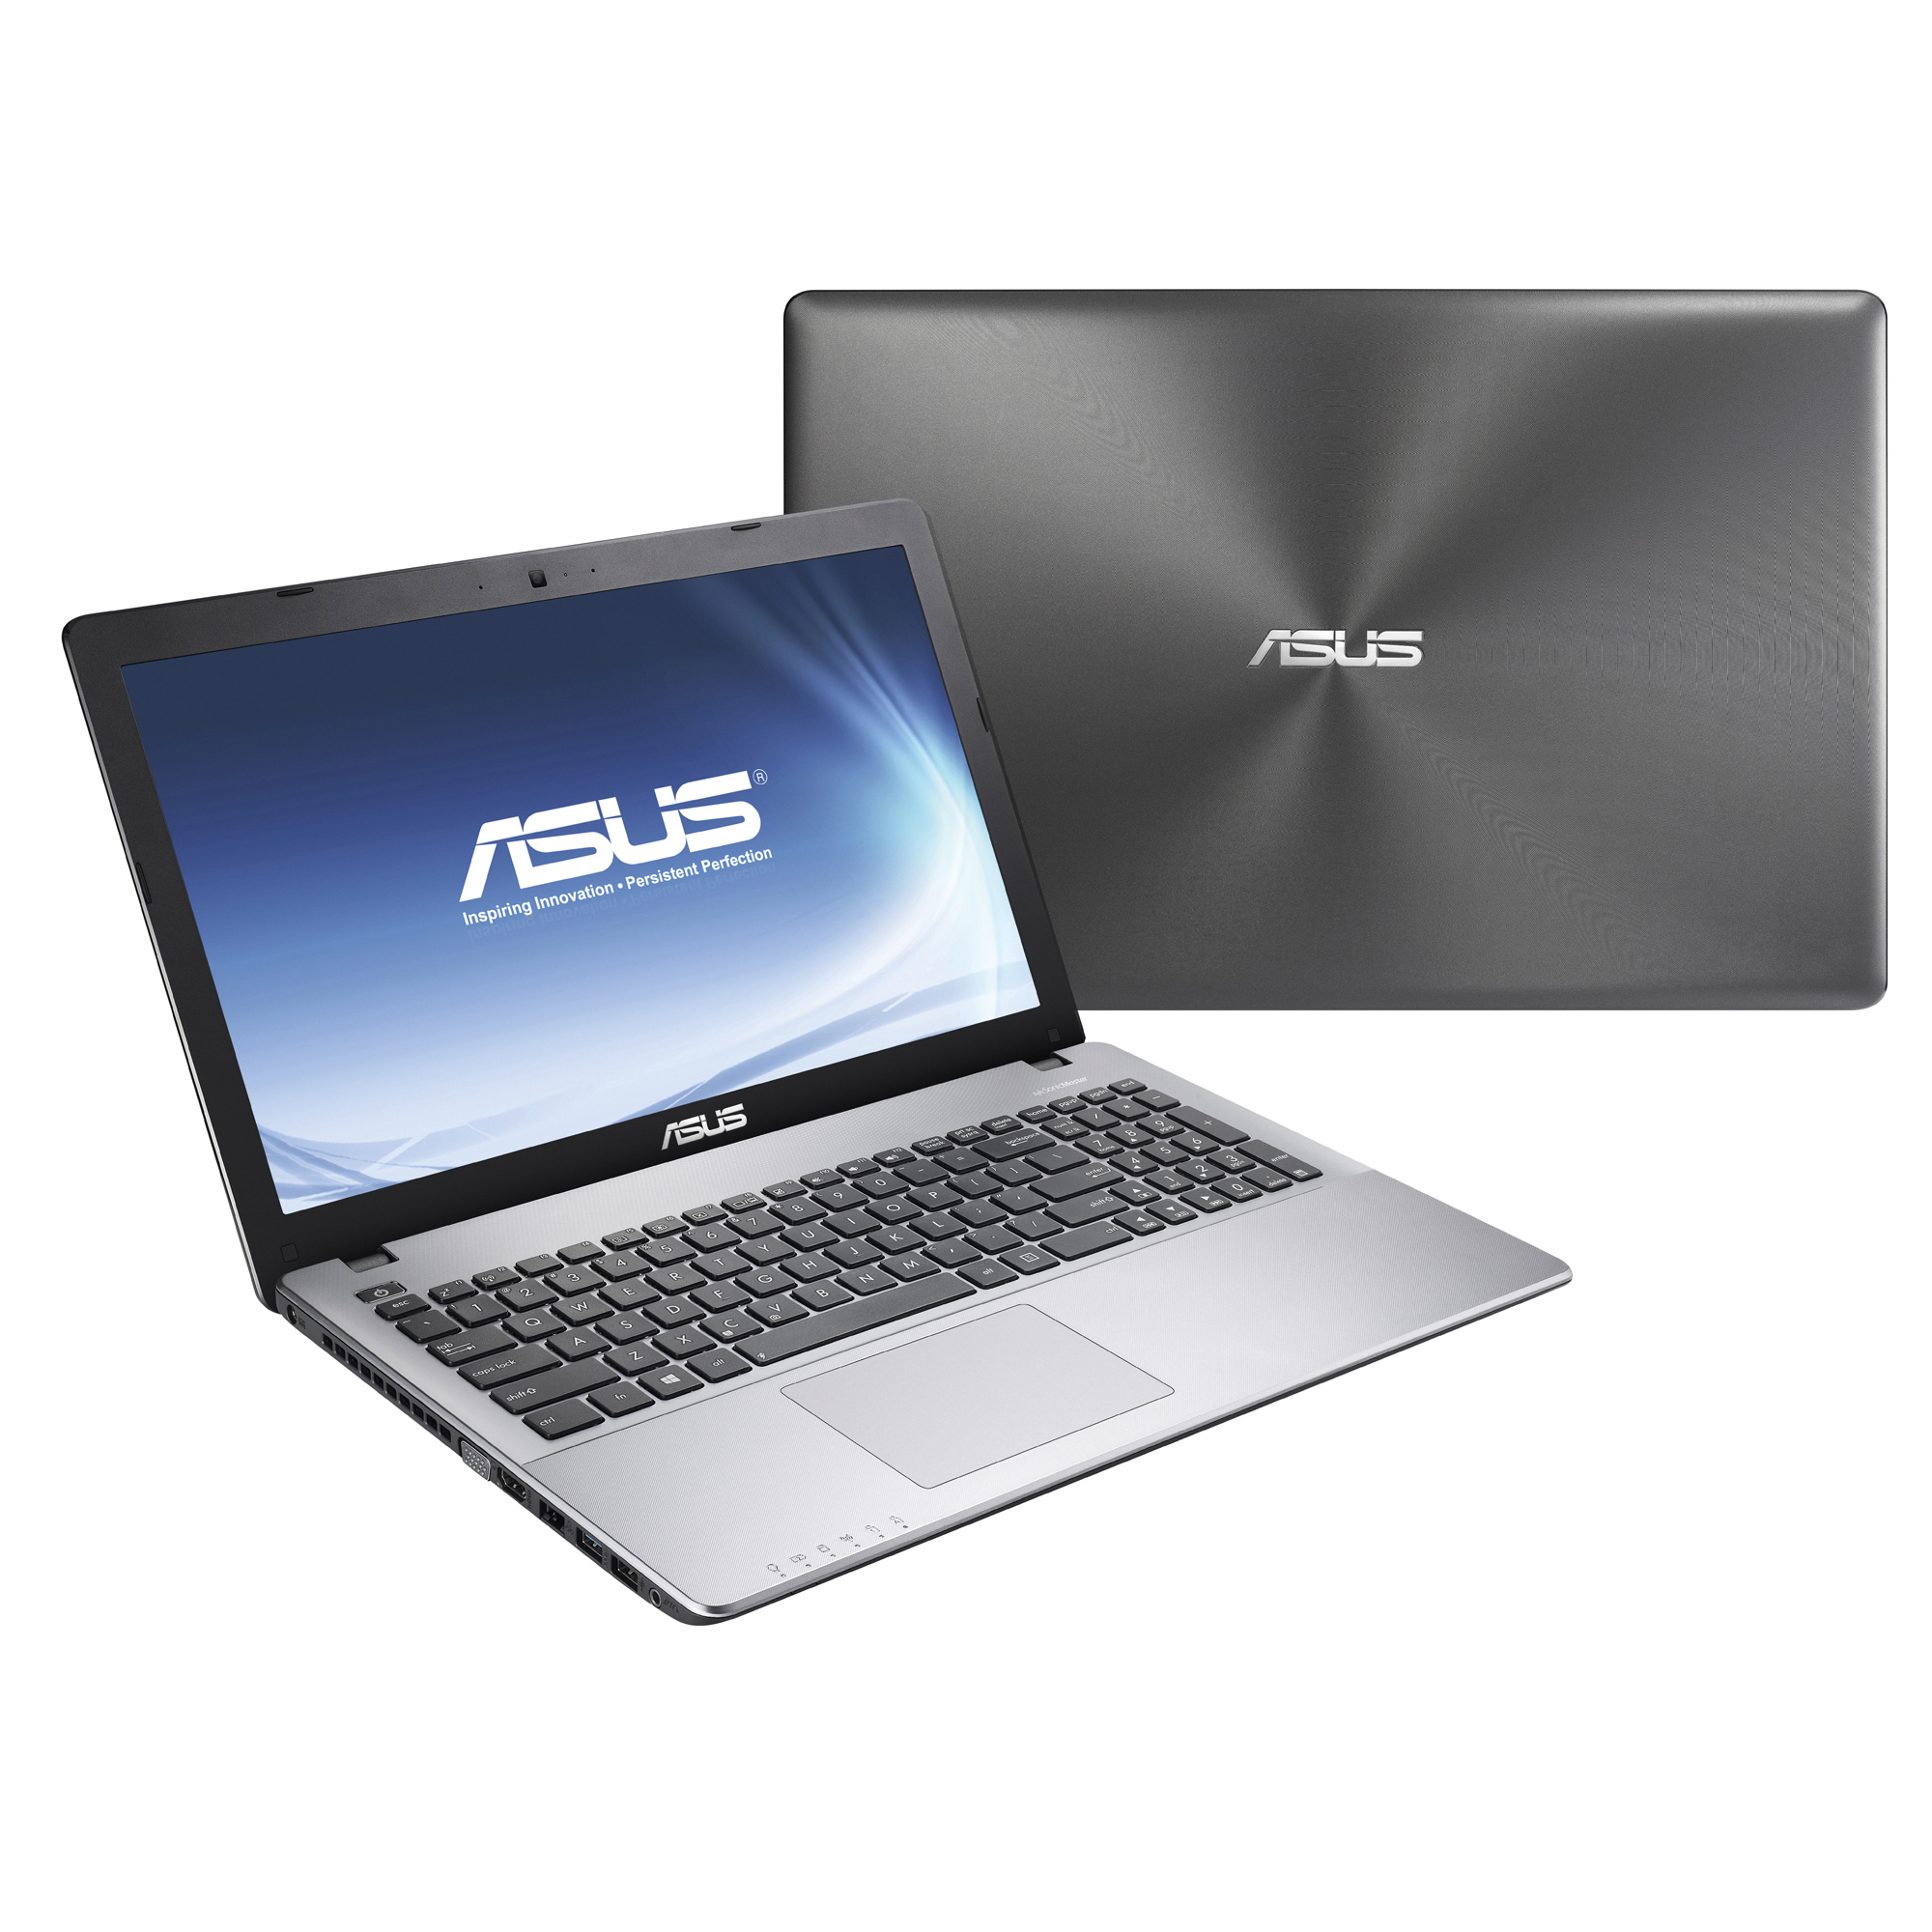 Asus X550LB Intel Graphics Windows Vista 64-BIT